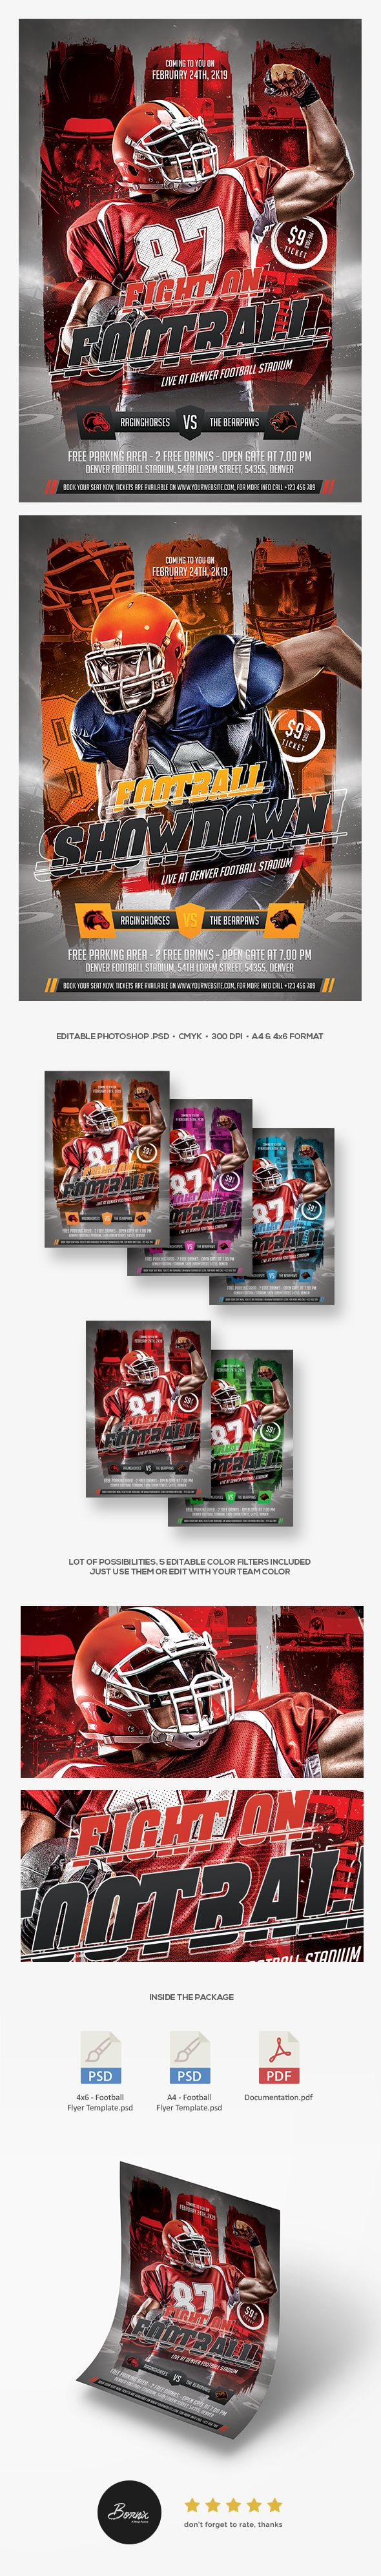 Football flyer template for Photoshop perfect to promote your college football league, football match, NFL, or any football events. #graphicriver #flyer #poster #banner #sports #football #nfl #american #sport #design #graphic #print #photoshop #template #adobe #championship #international #download #psd #psdtemplates